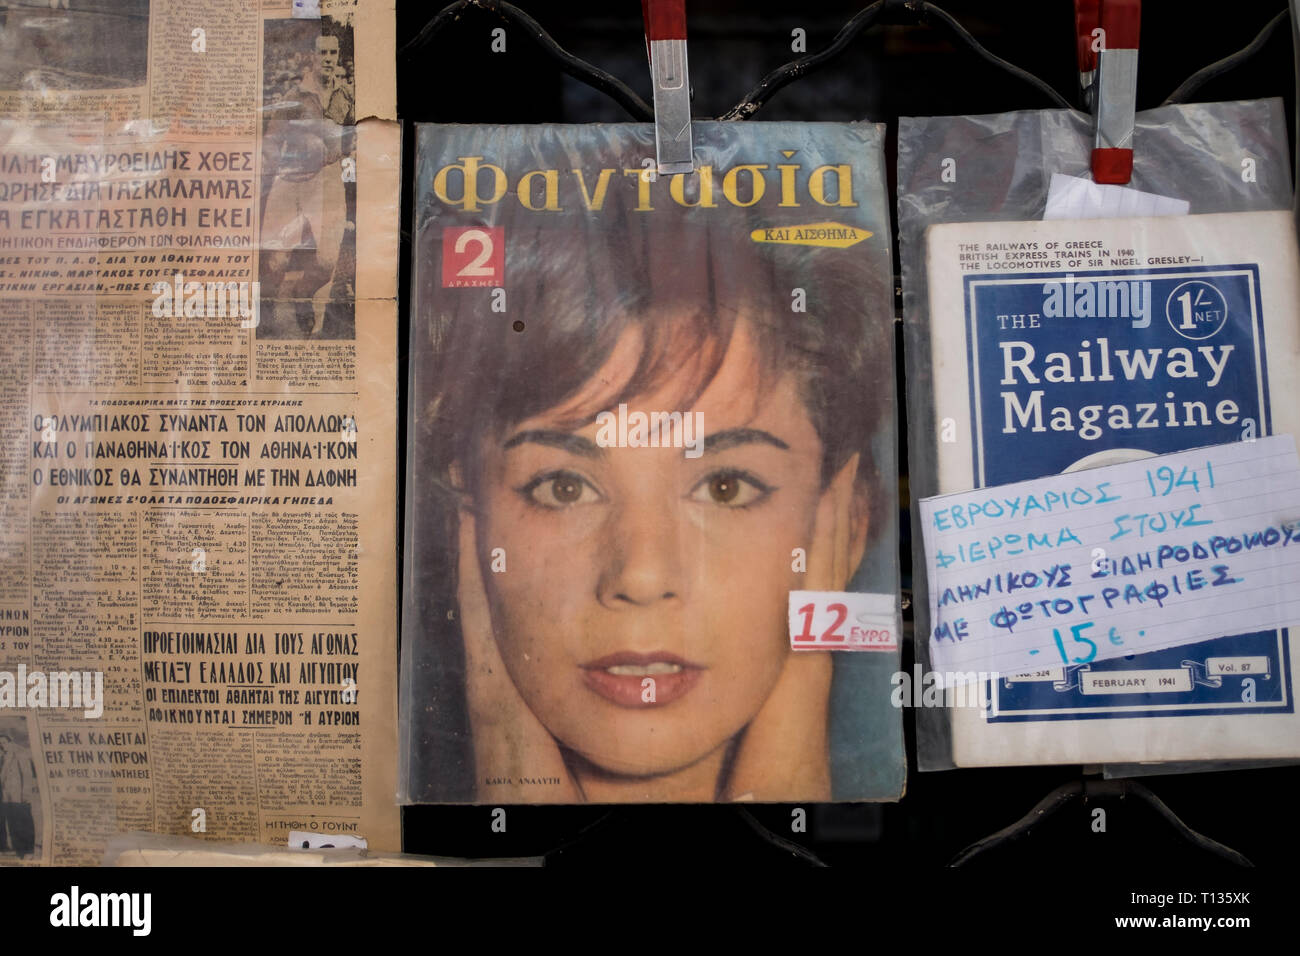 A variety of old Greek magazines, periodicals for sale at a flea market in Thessaloniki, Greece. - Stock Image